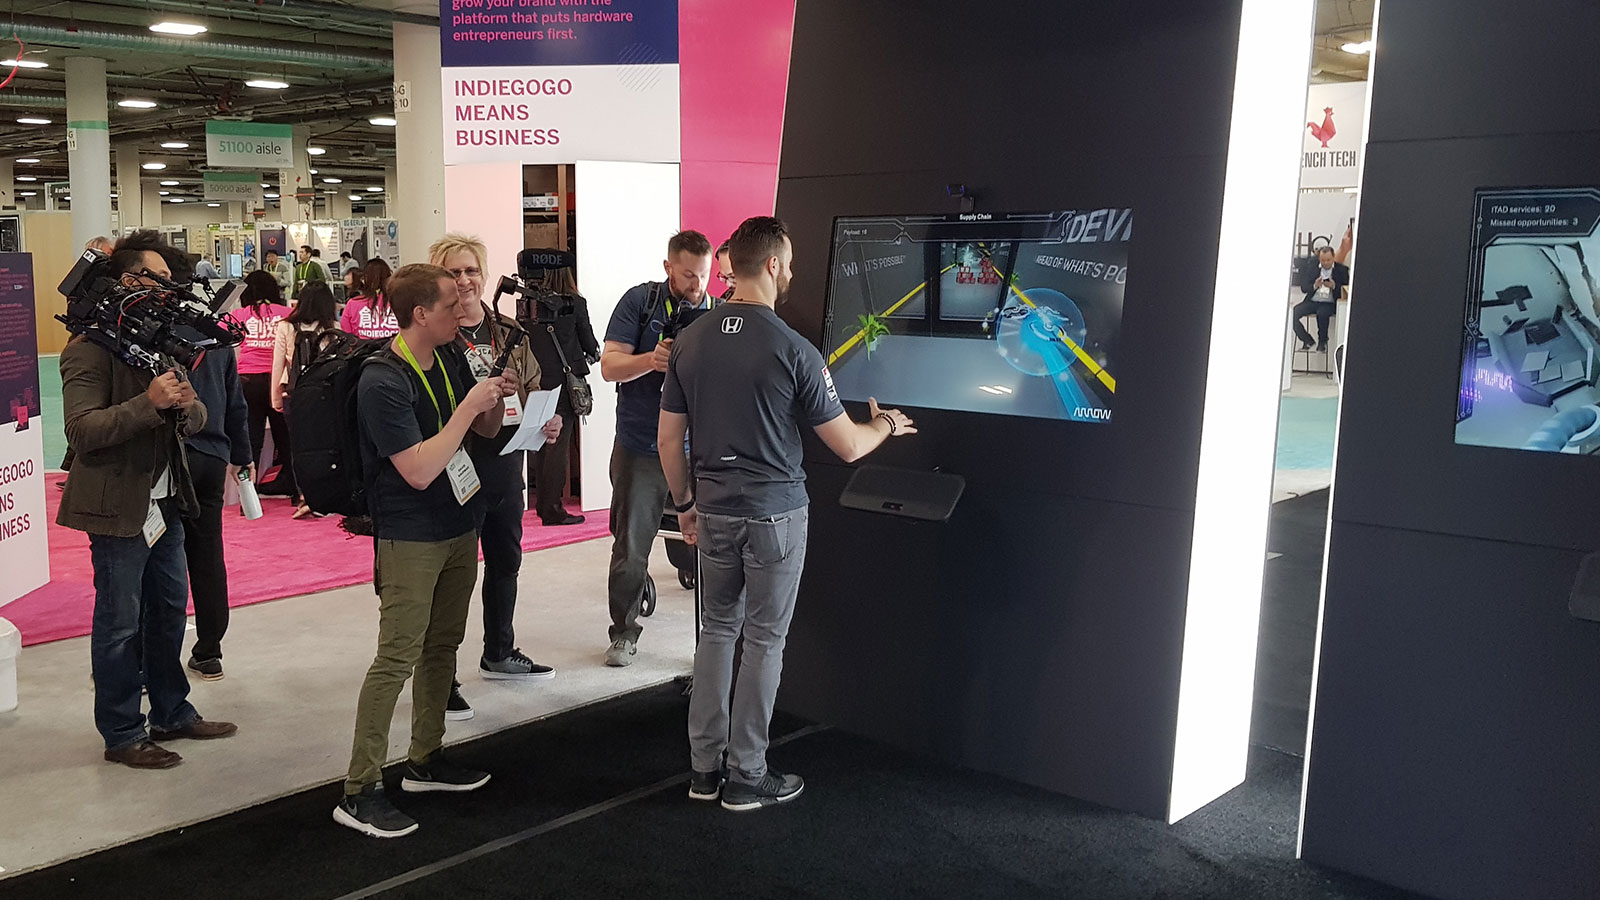 Ultraleap technology at Arrow's CES booth